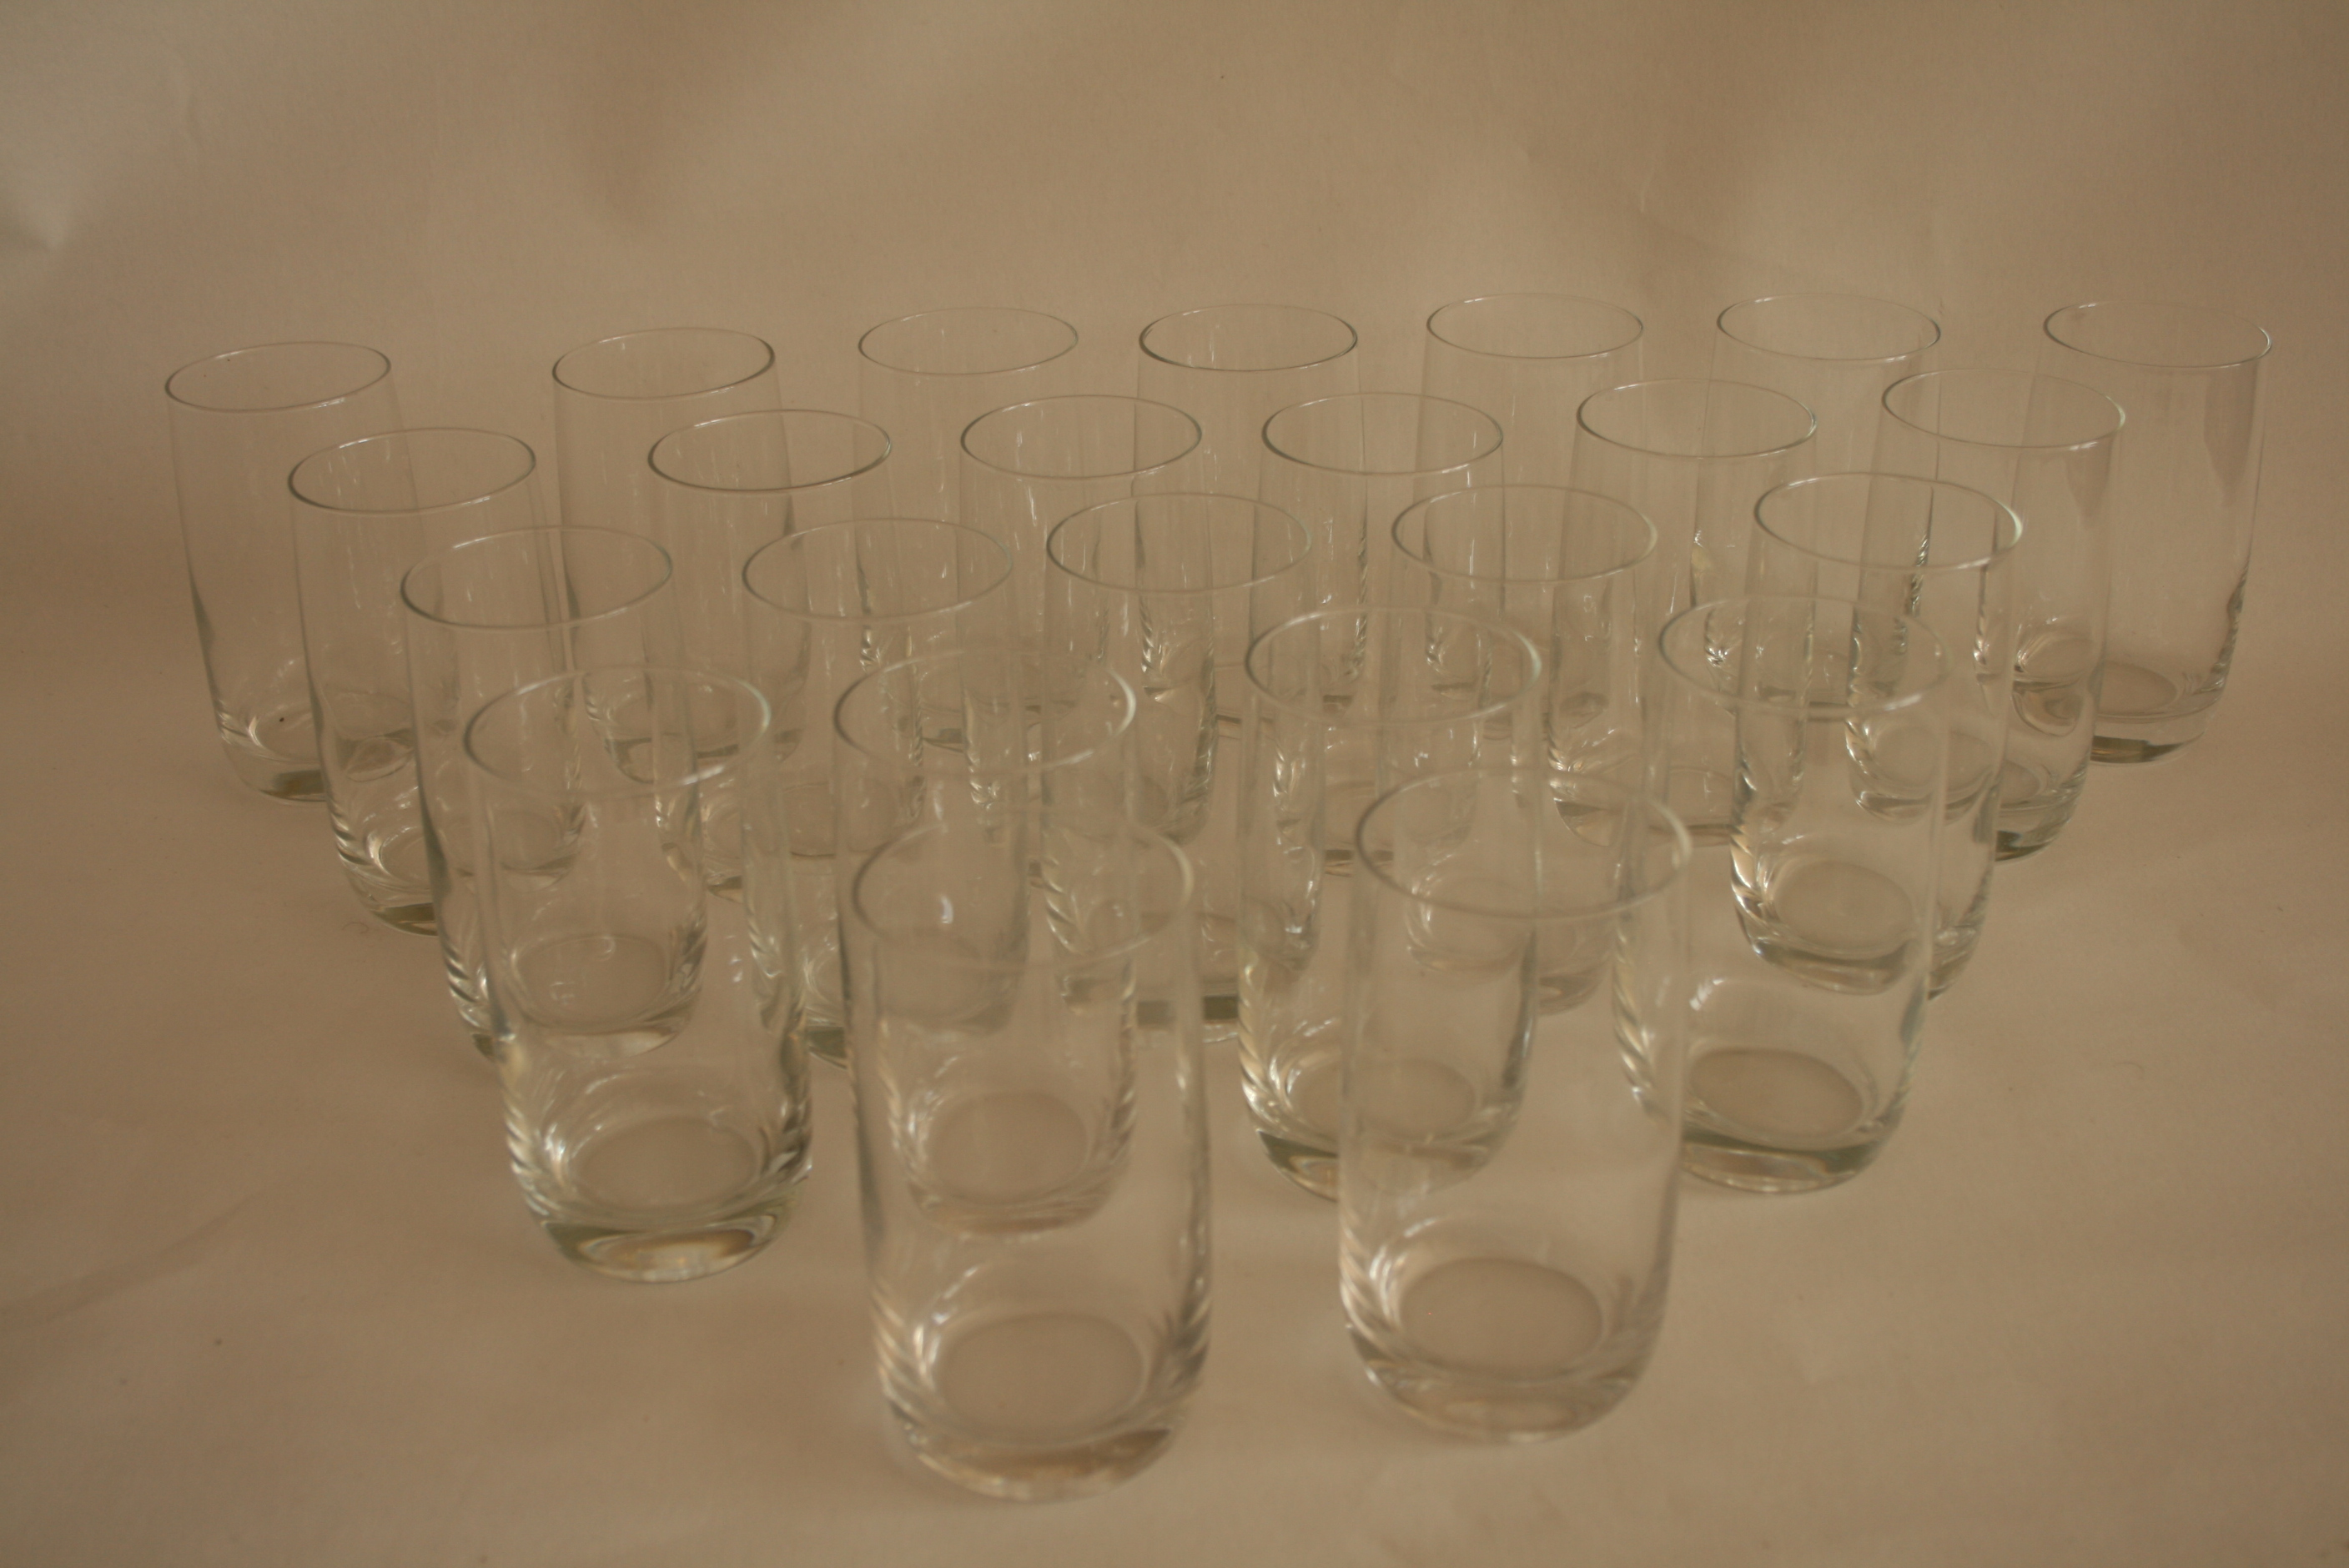 Lot 51 - Ensemble de 24 verres à eau en cristal (12,5 cm) - Set of 24 crystal water glasses [...]